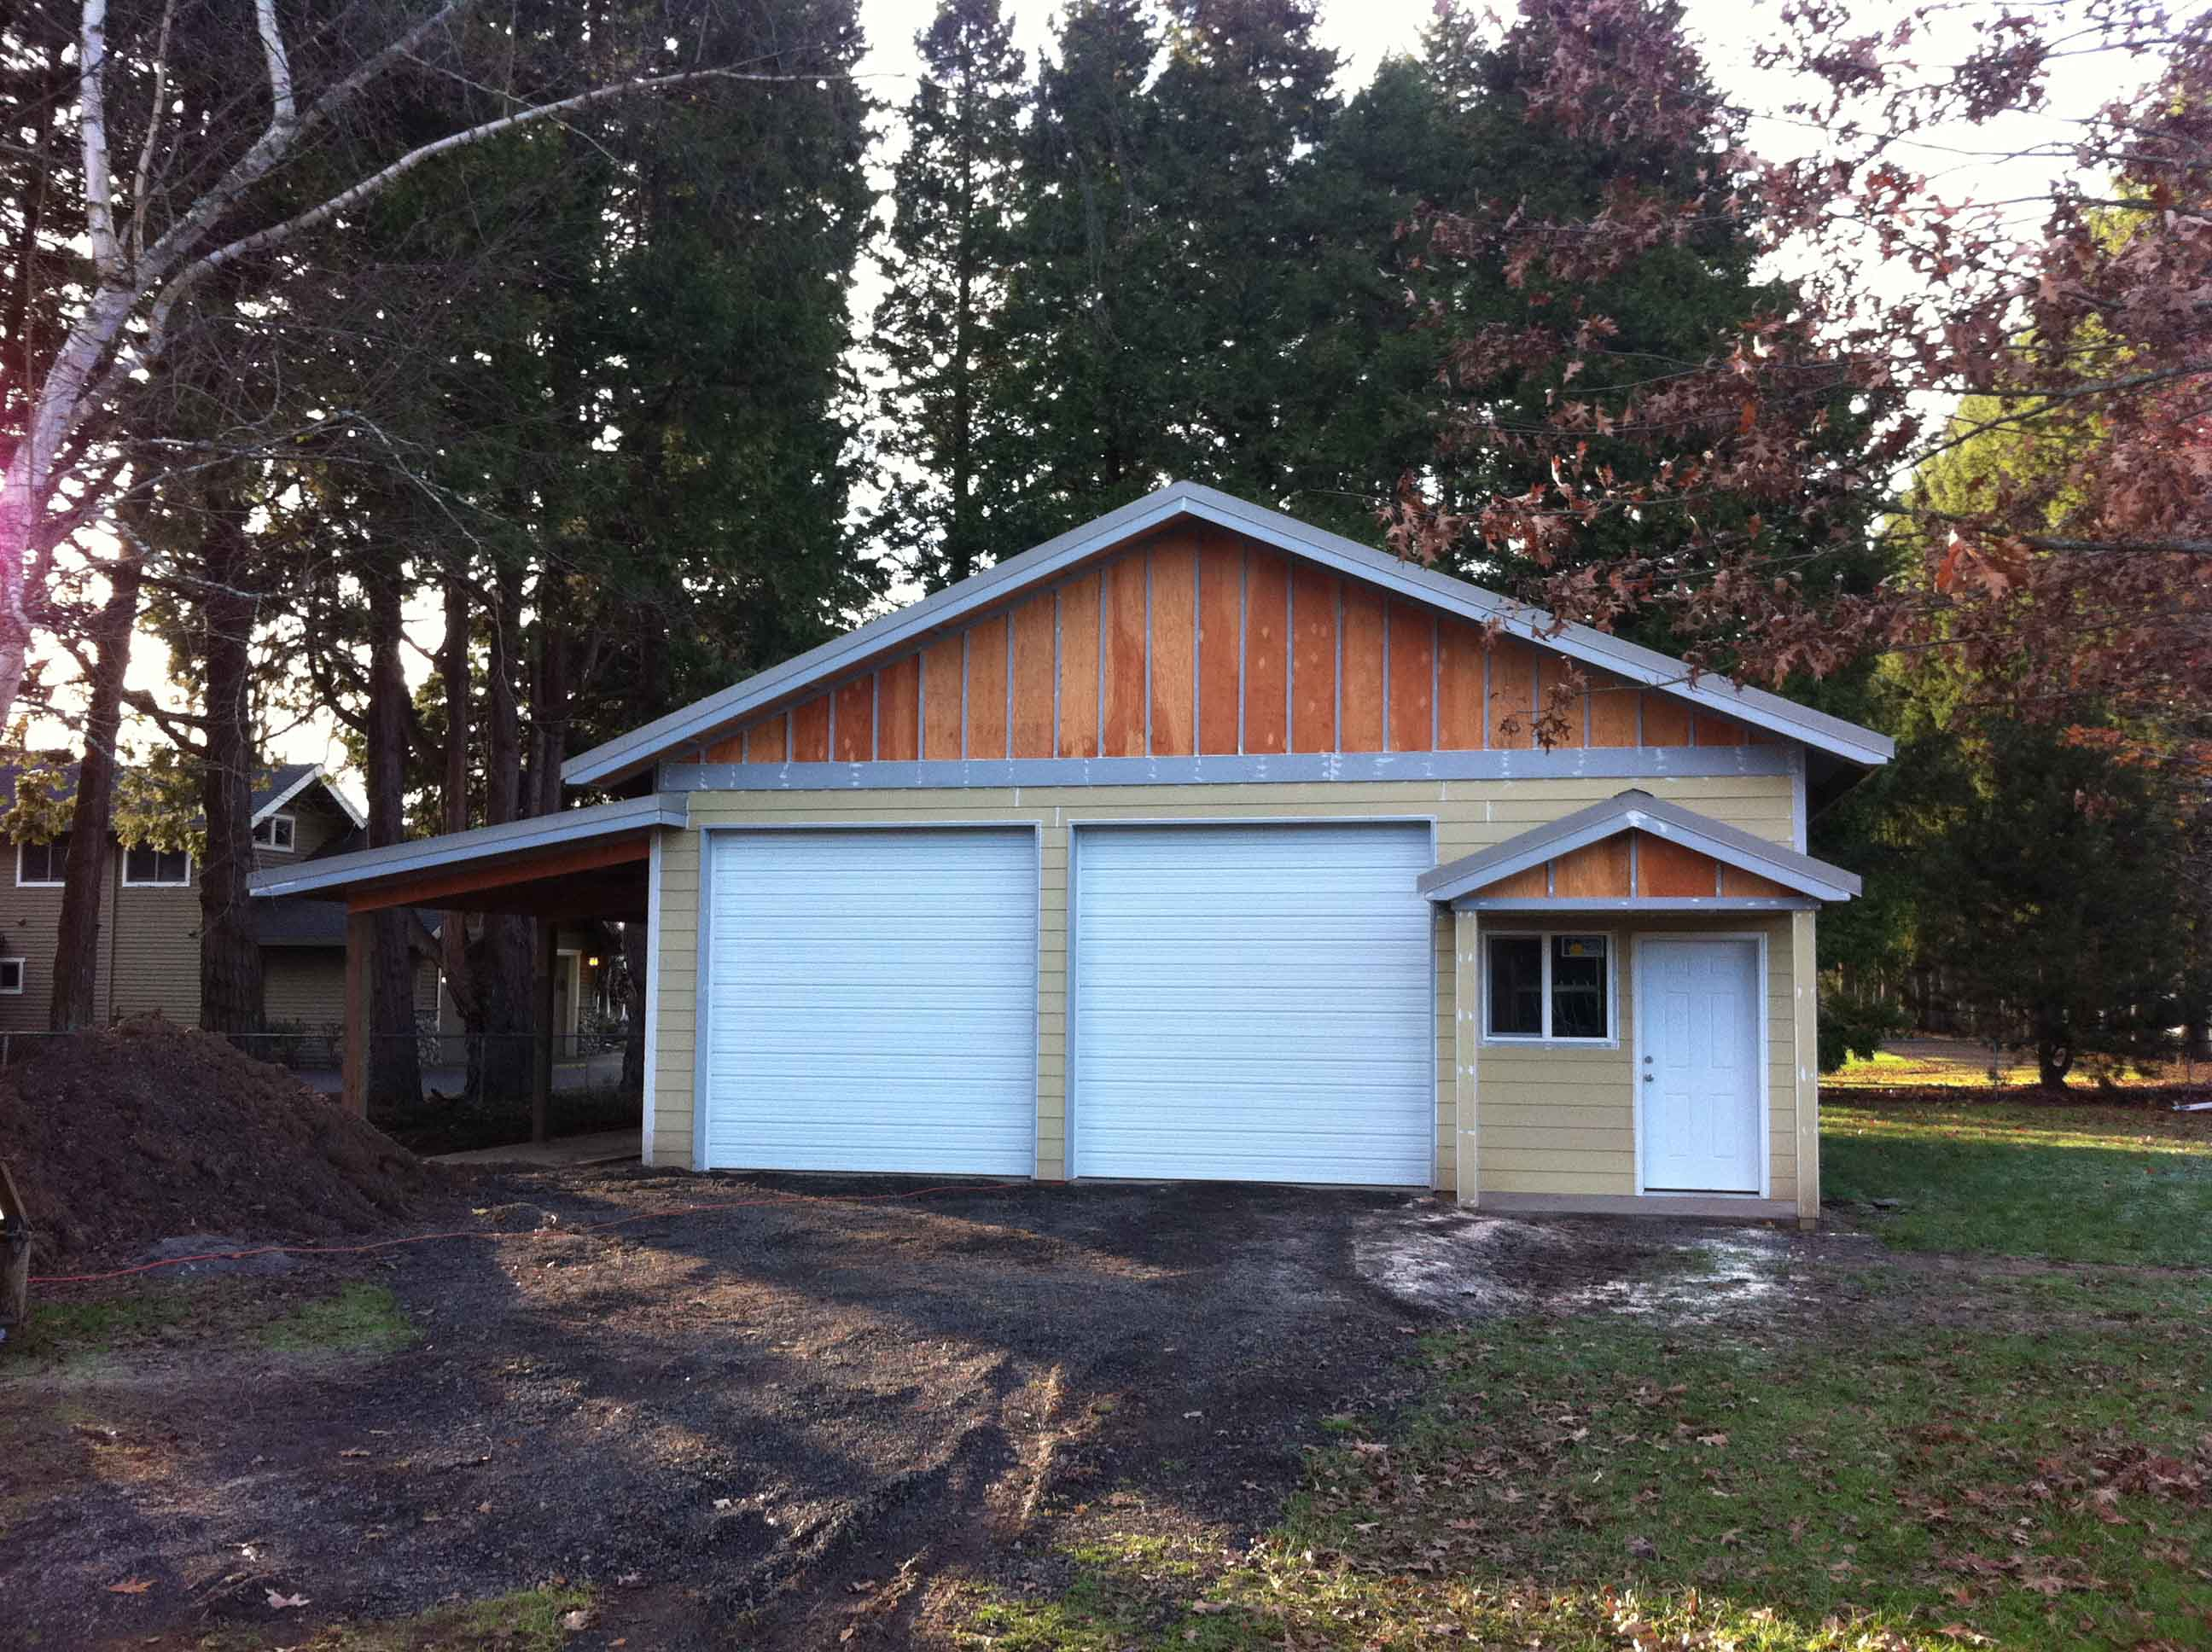 Nice shop with lap siding and board and batt